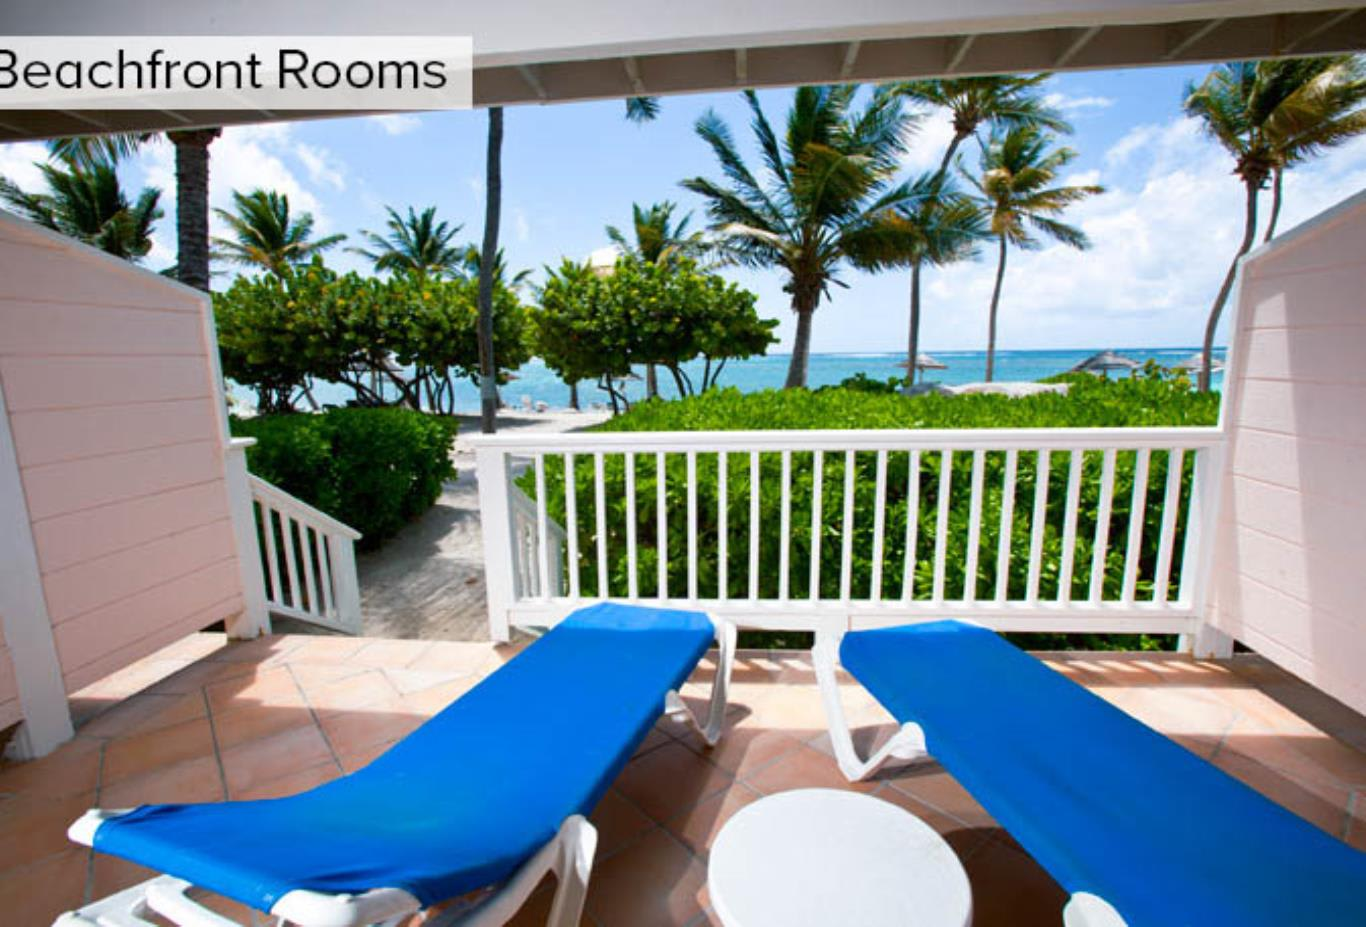 Beachfront Room Patio